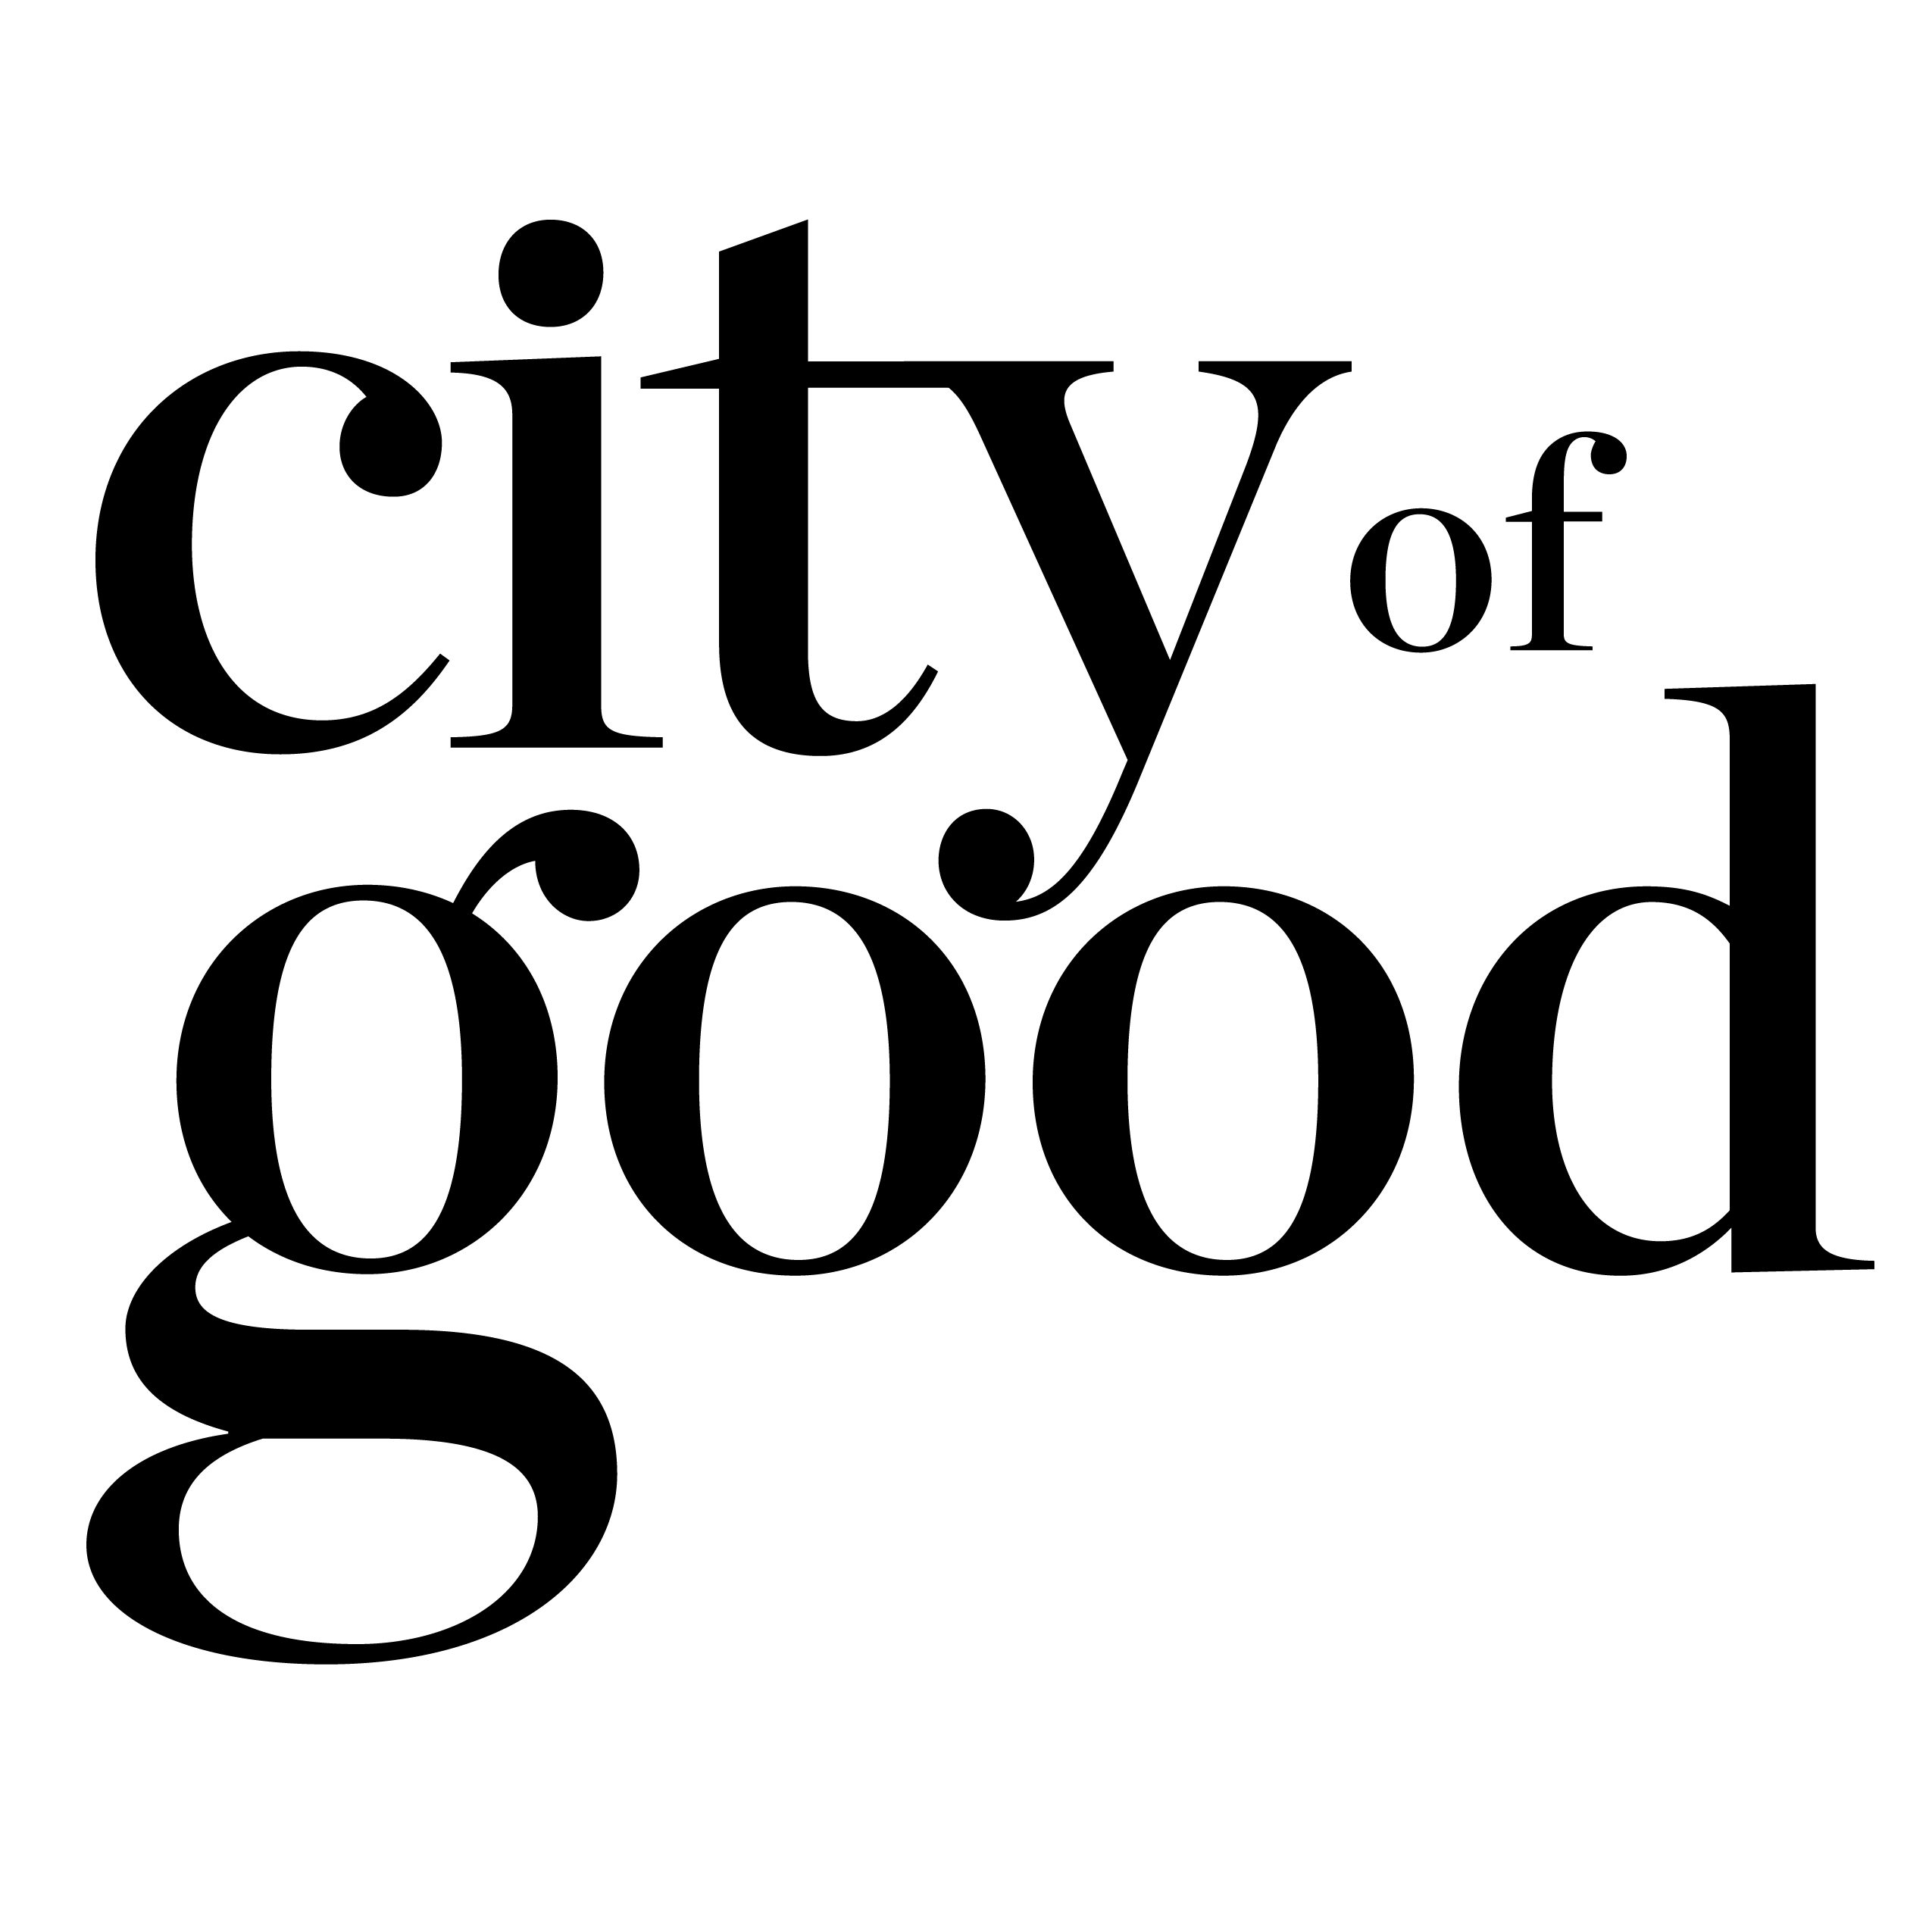 City of Good